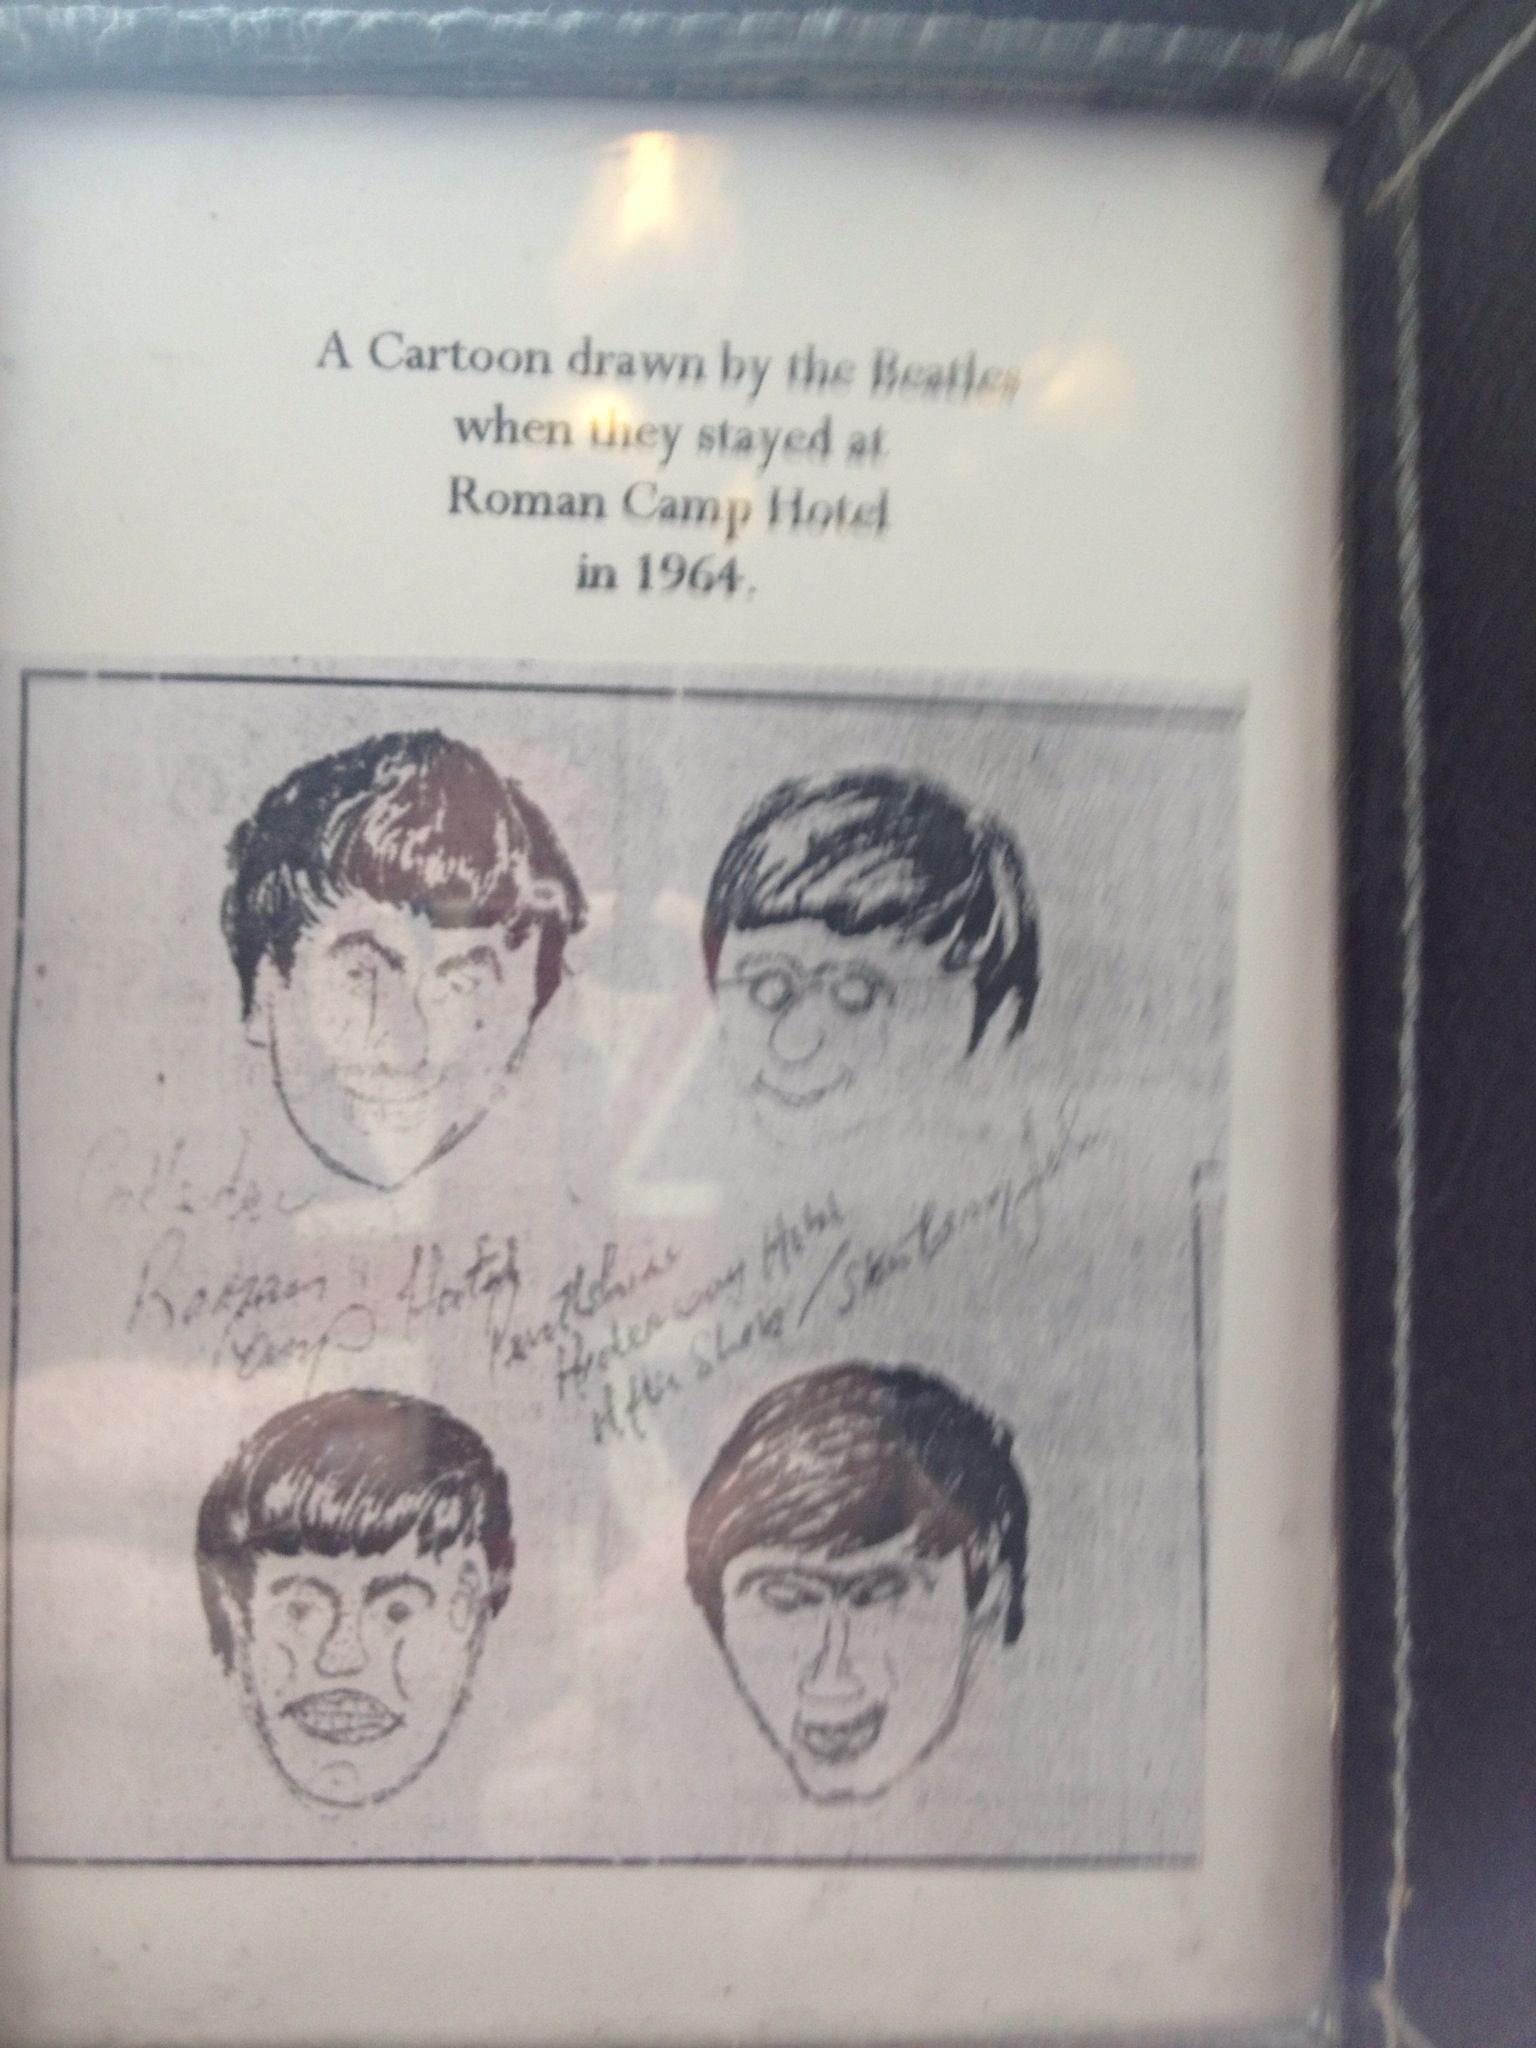 Beatles Own Self Portraits From 1964 Stay In Roman Camp Hotel Callander Scotland